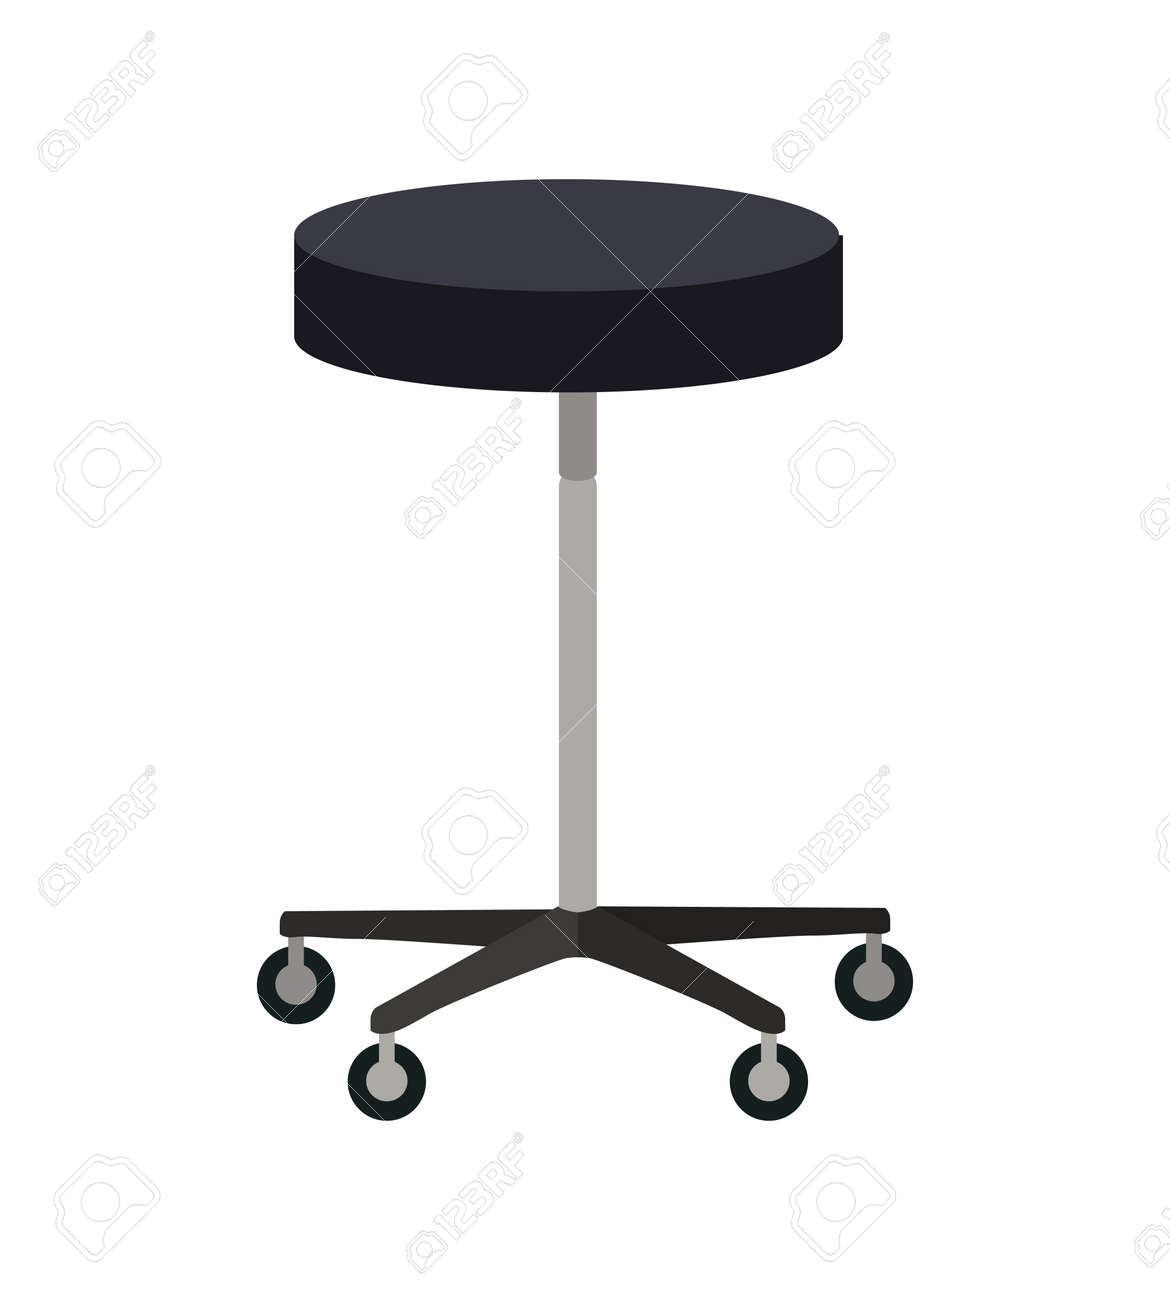 Stool On Wheels Vector Flat Design Simple Round Chair With